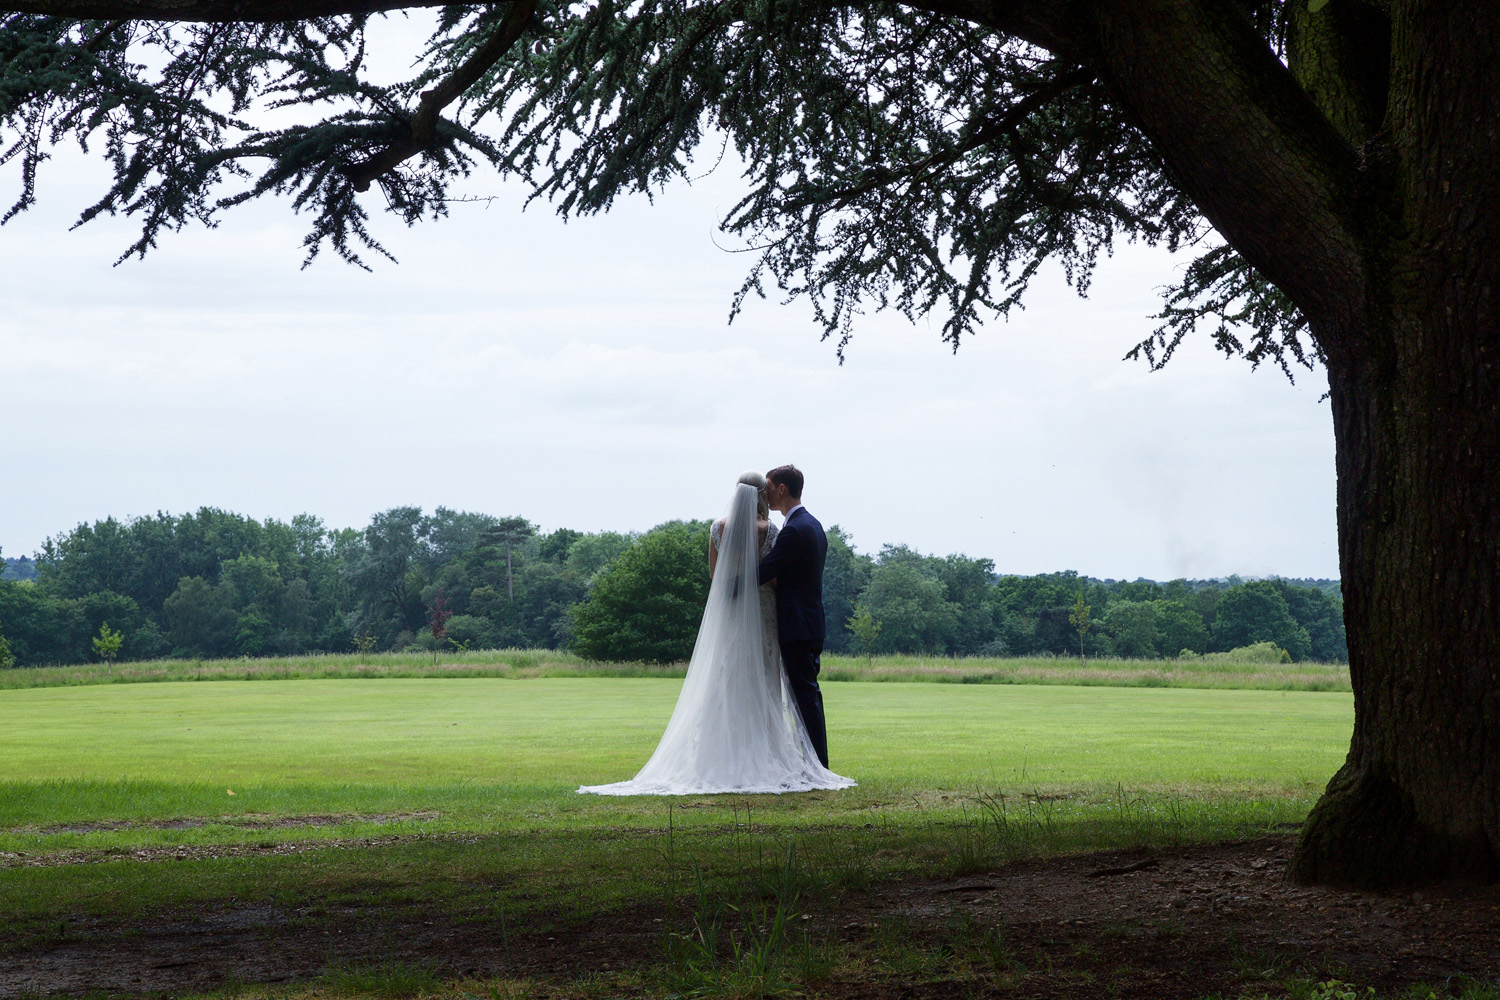 Easthampstead_Park_Wedding_Photographer_Bracknell_Berkshire_010.jpg